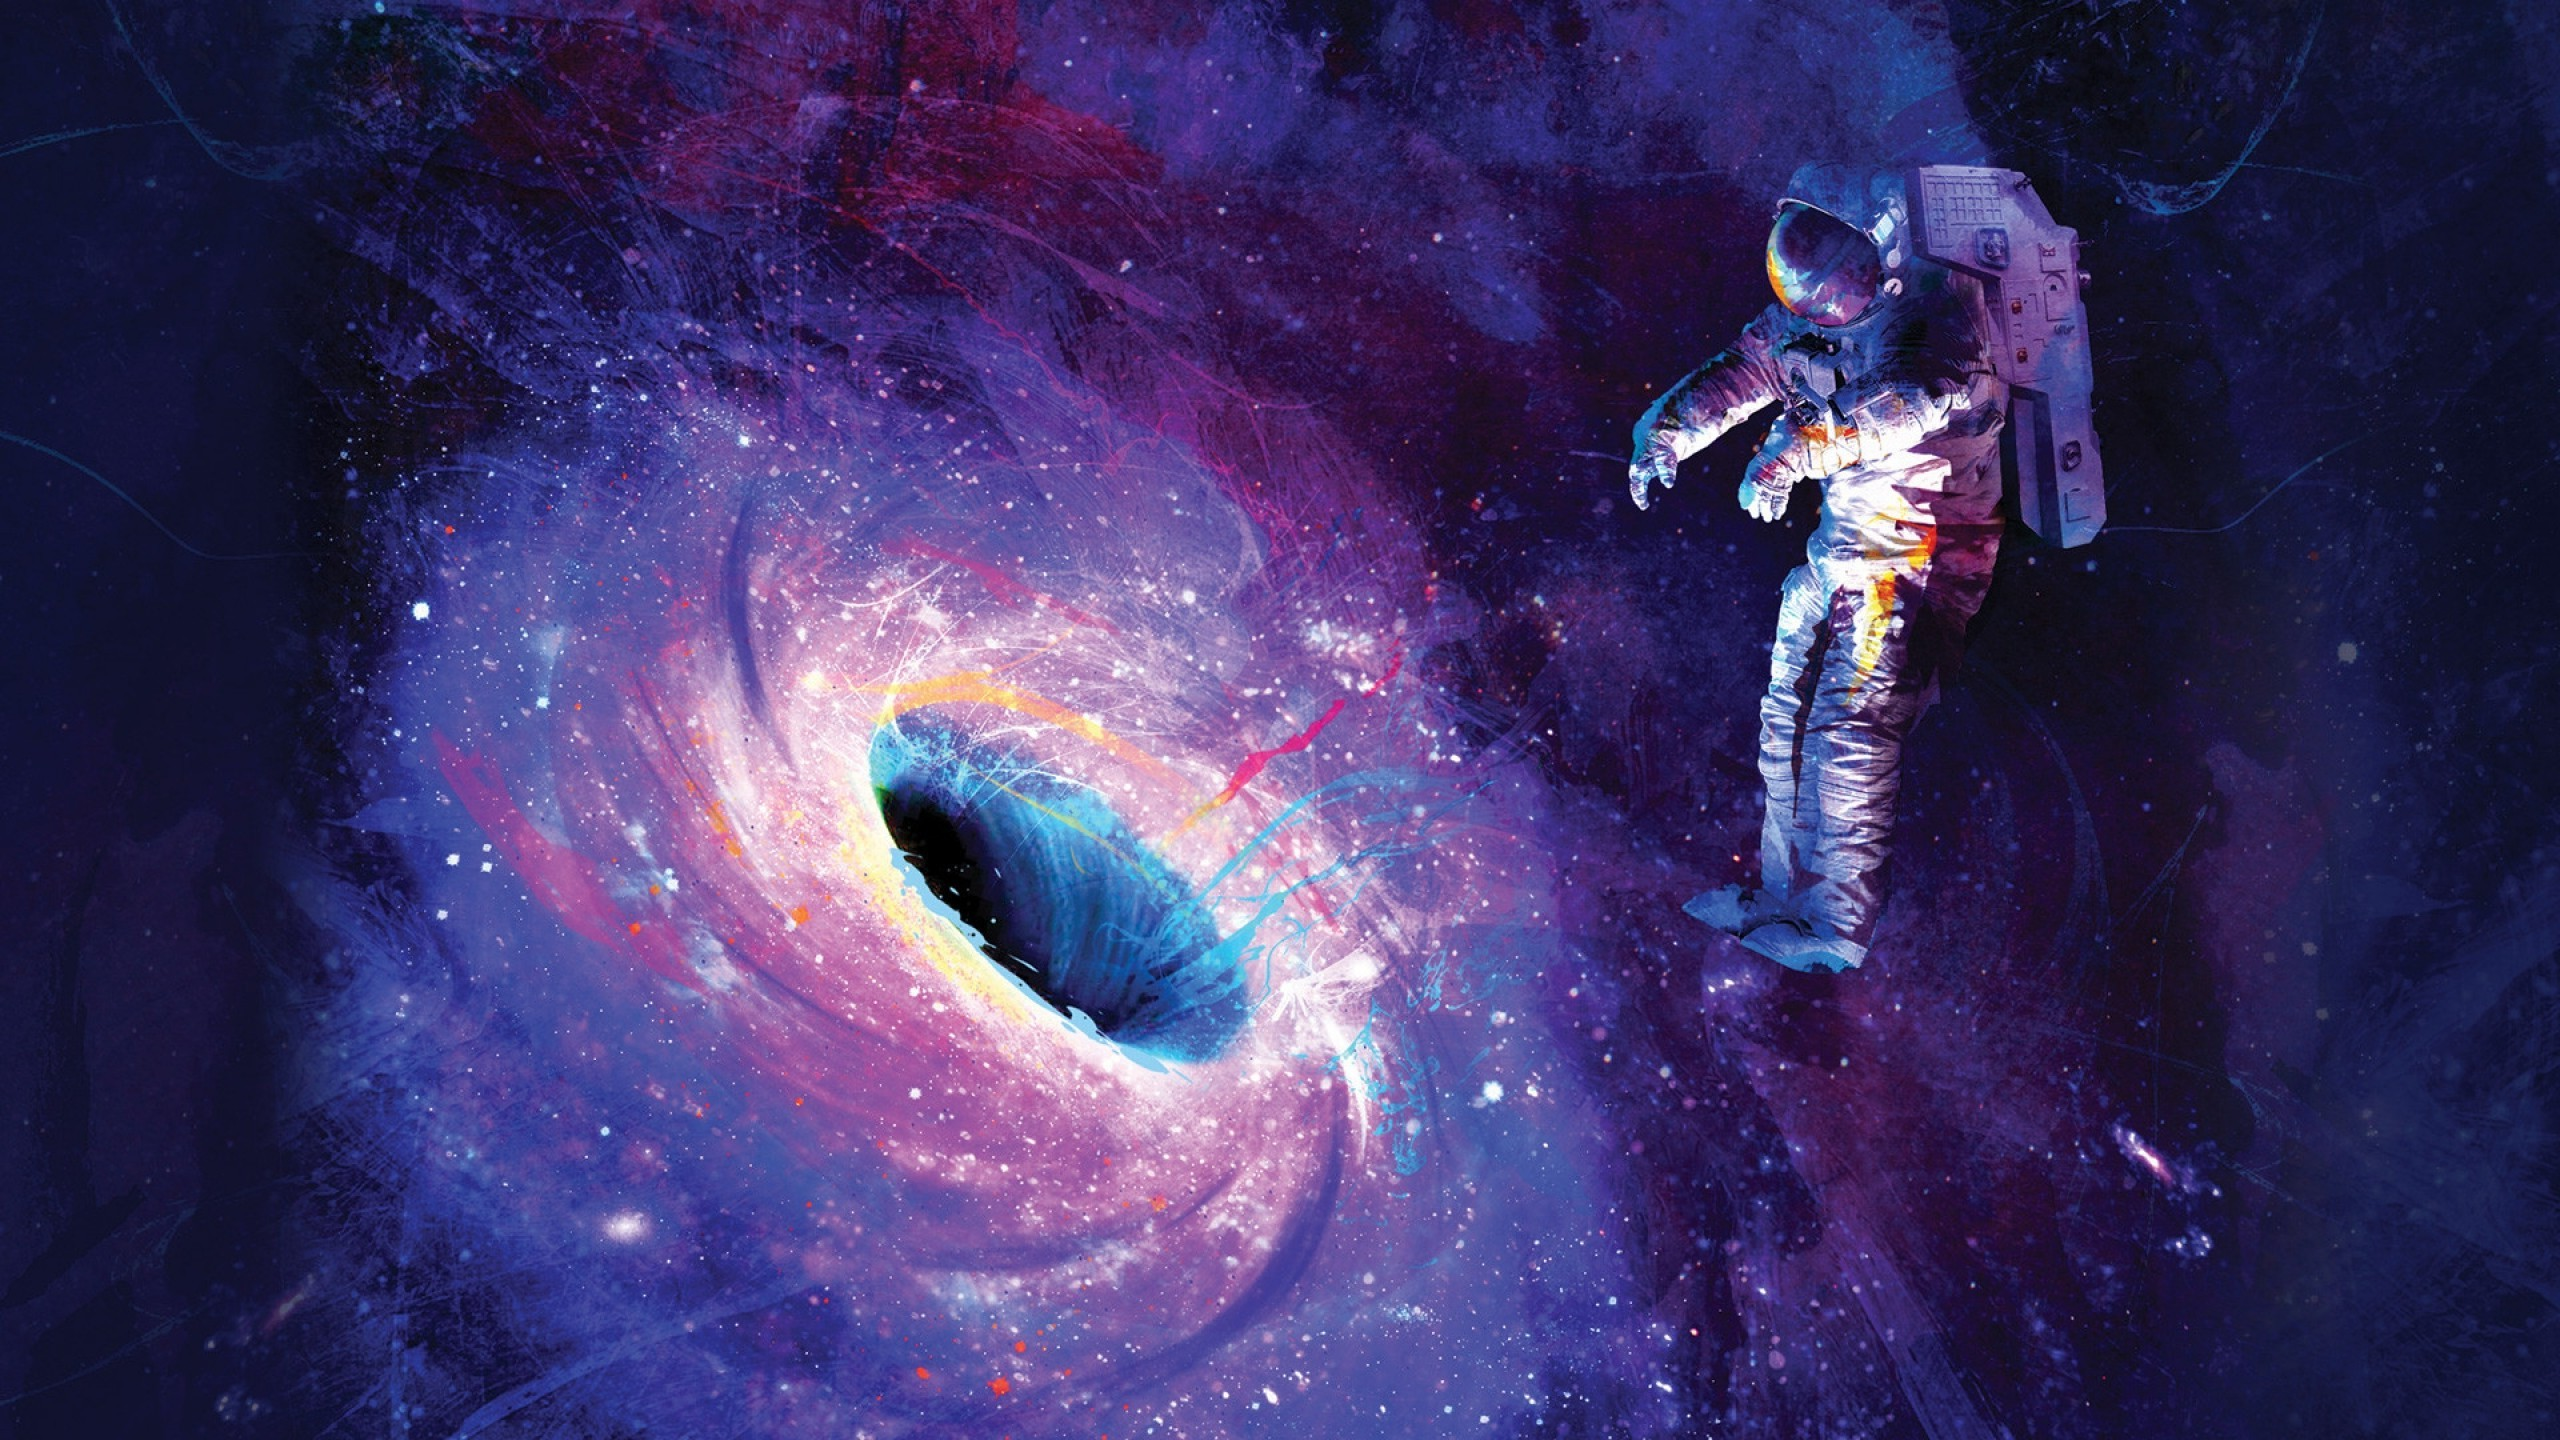 Astronauts, Space, Colorful Wallpaper - Astronauts In Space Art , HD Wallpaper & Backgrounds